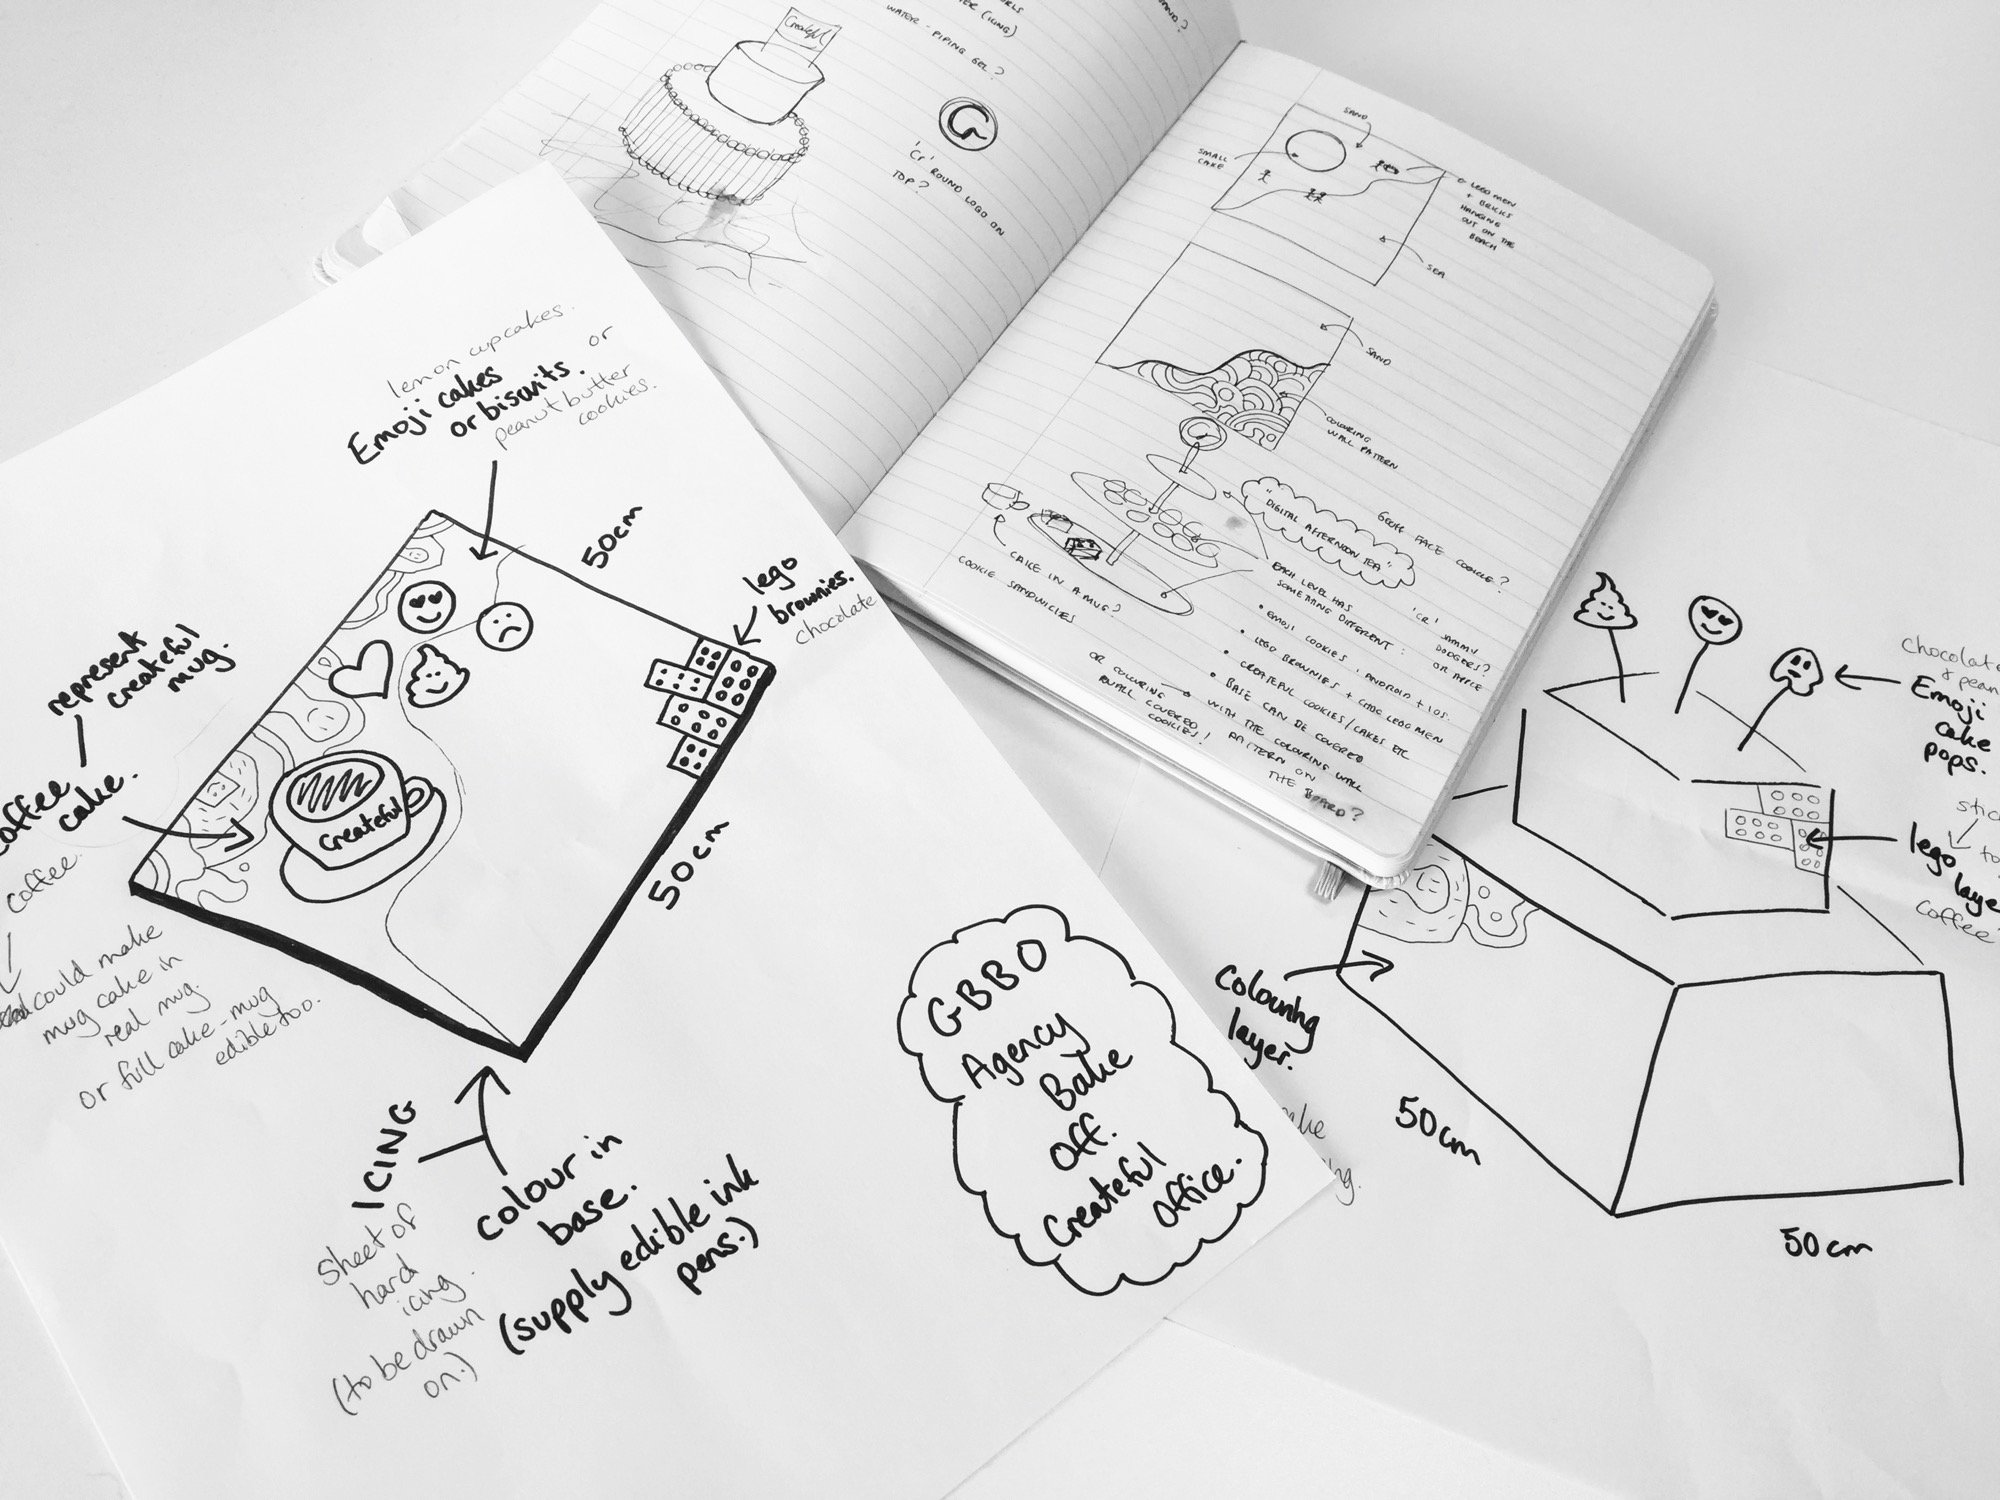 Initial sketches for the Love Cake Agency Bake Off